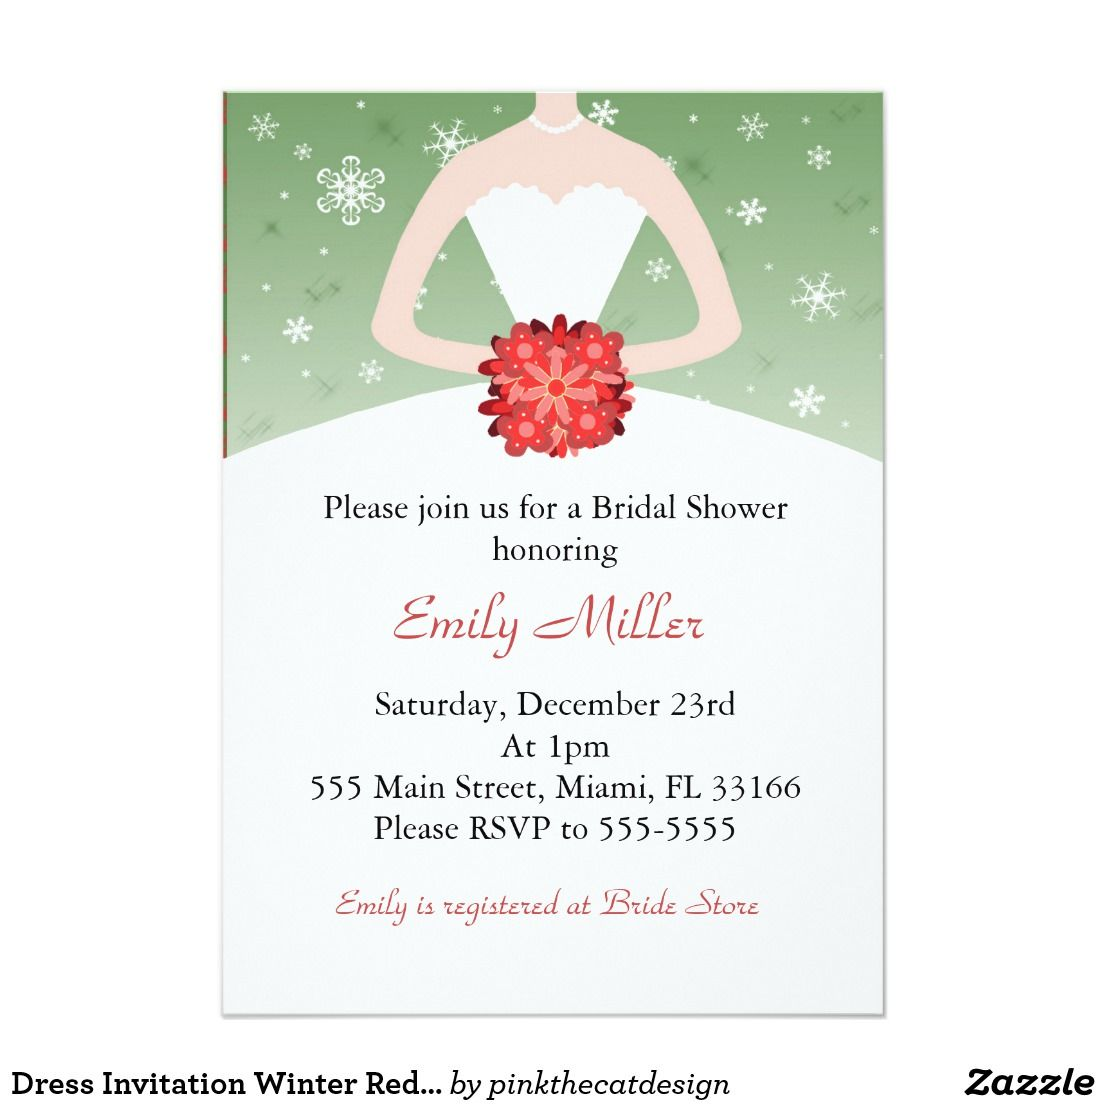 Dress Invitation Winter Red Green Bridal Shower Impress your guests with this lovely invitation card. Personalize it with your details for any event.